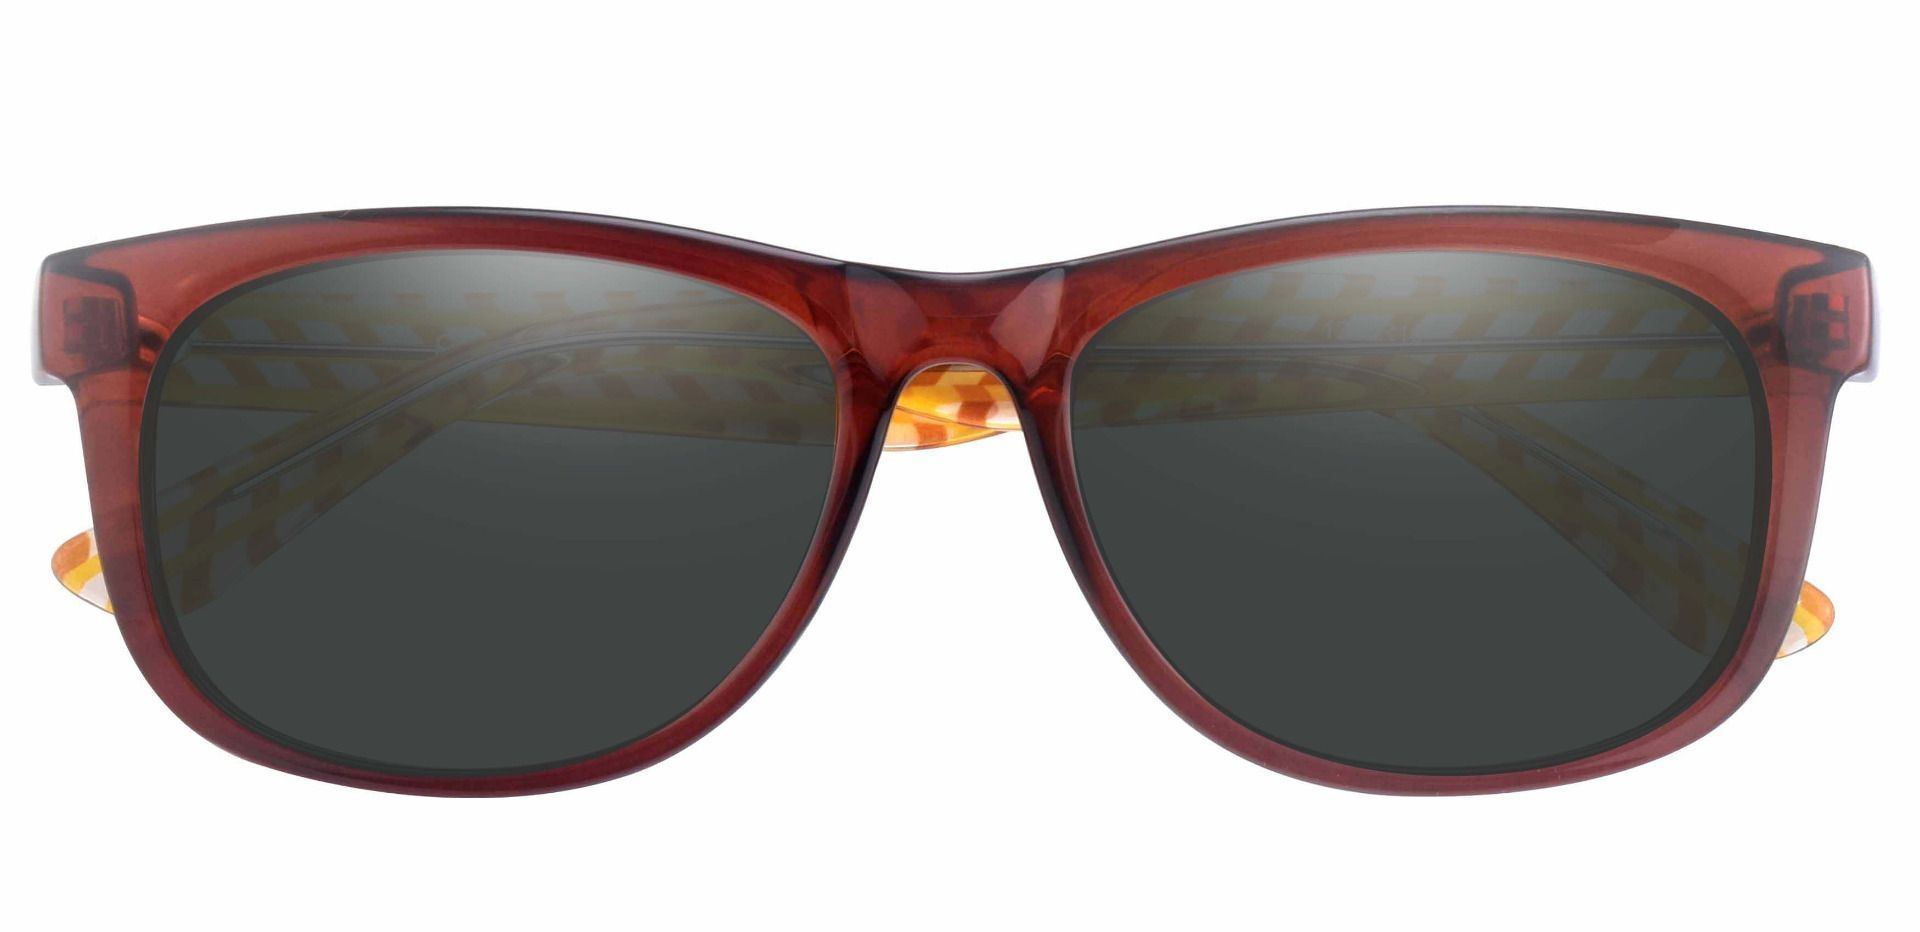 Bergamot Classic Square Prescription Sunglasses - Red Frame With Gray Lenses